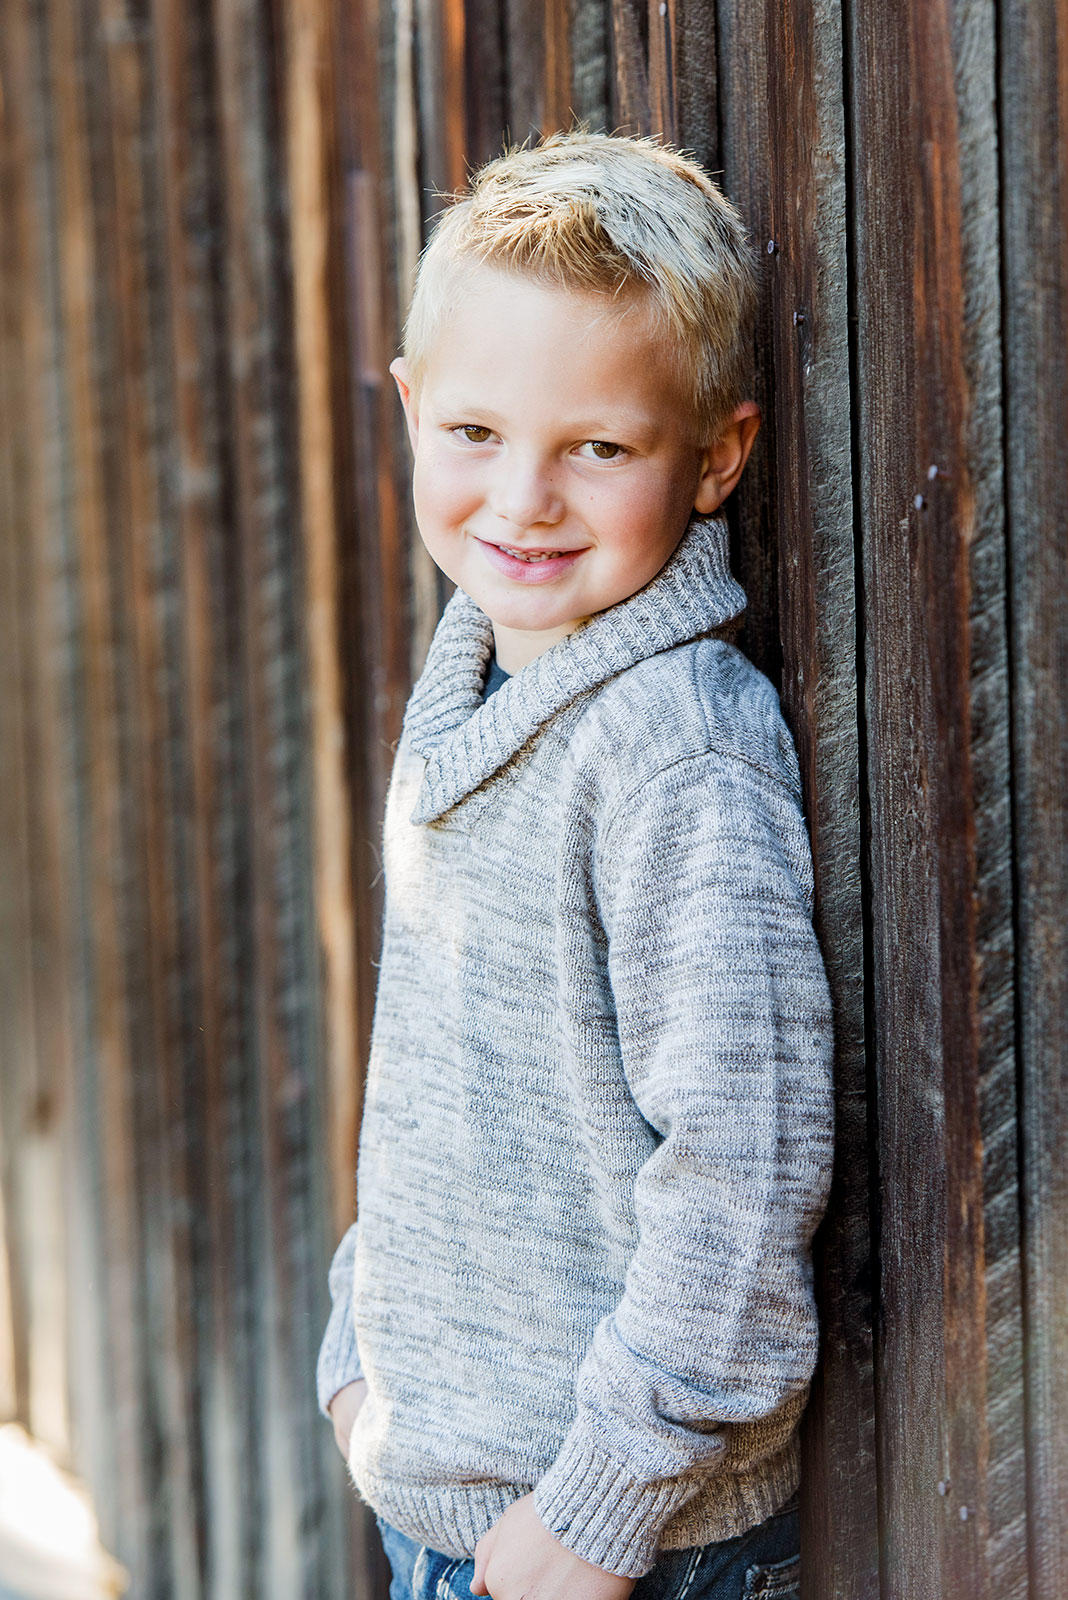 bettencourt-family-hollister-photography-03